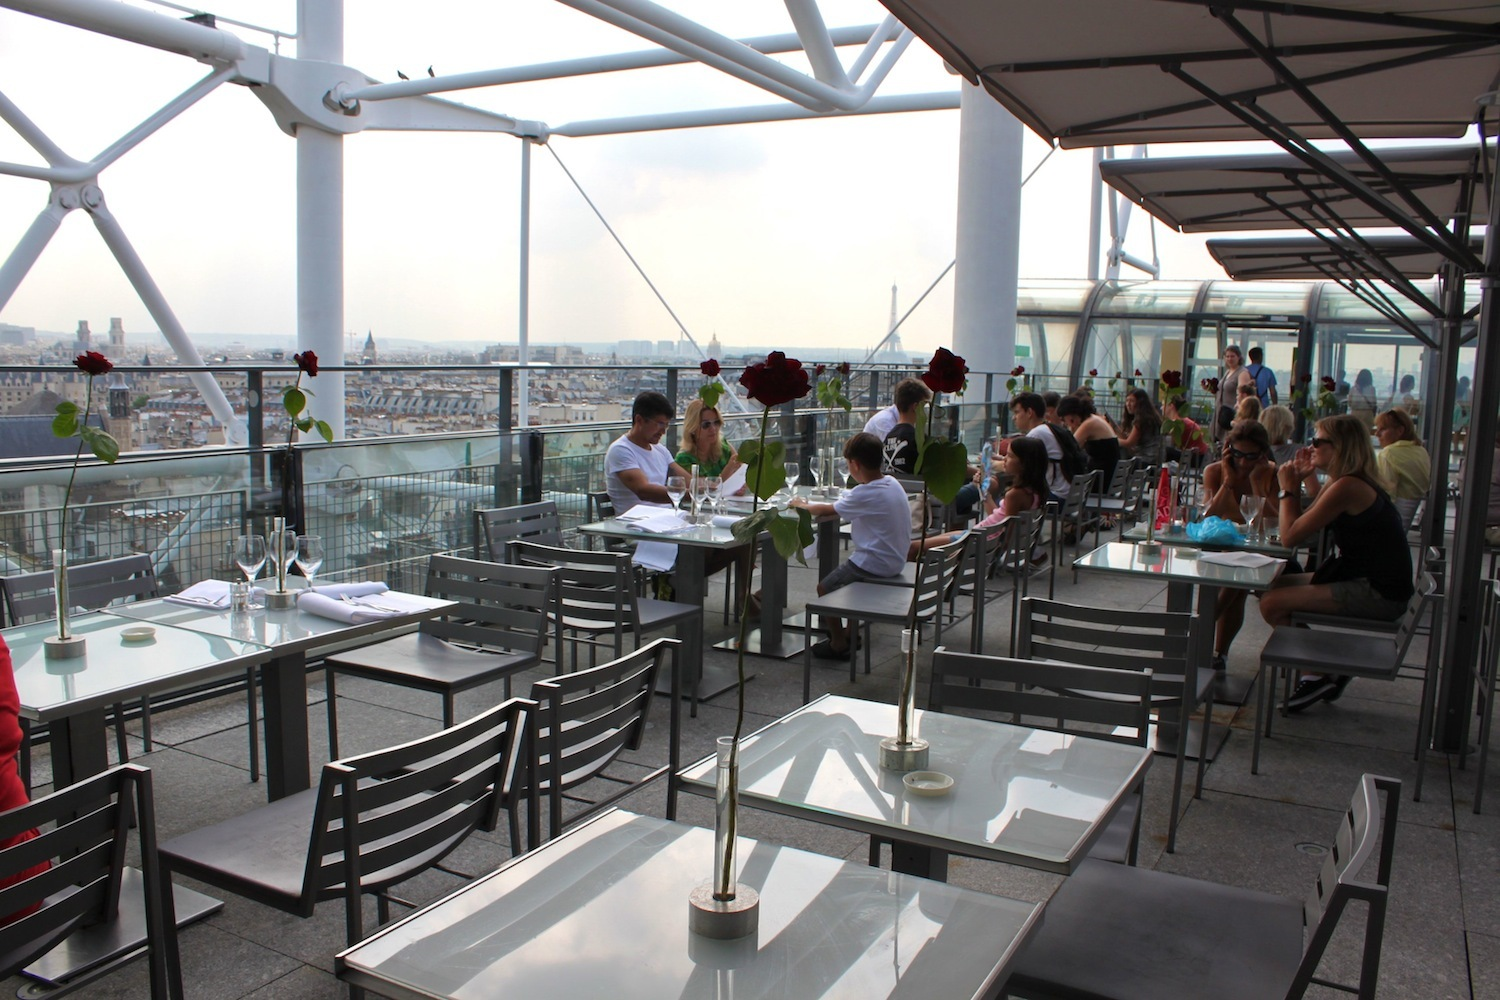 Best Of Terrasse Paris The Best Rooftop Bars In Paris Bars Restaurants Time Out Paris